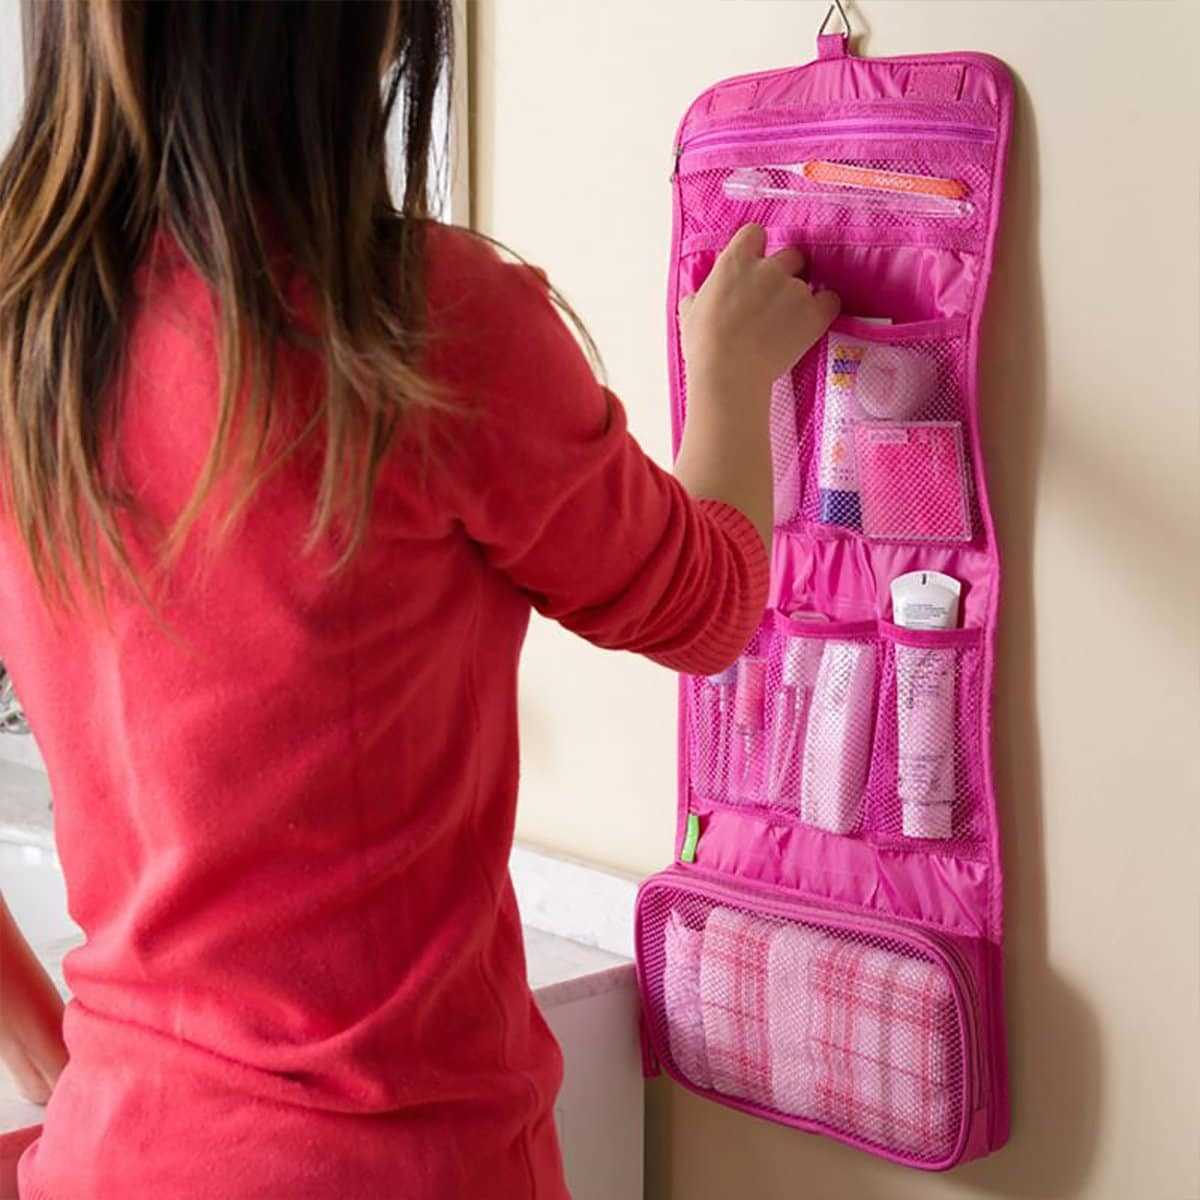 Hangable Roll-up Travel Storage Bag in Pink by ROMWE on GOOFASH